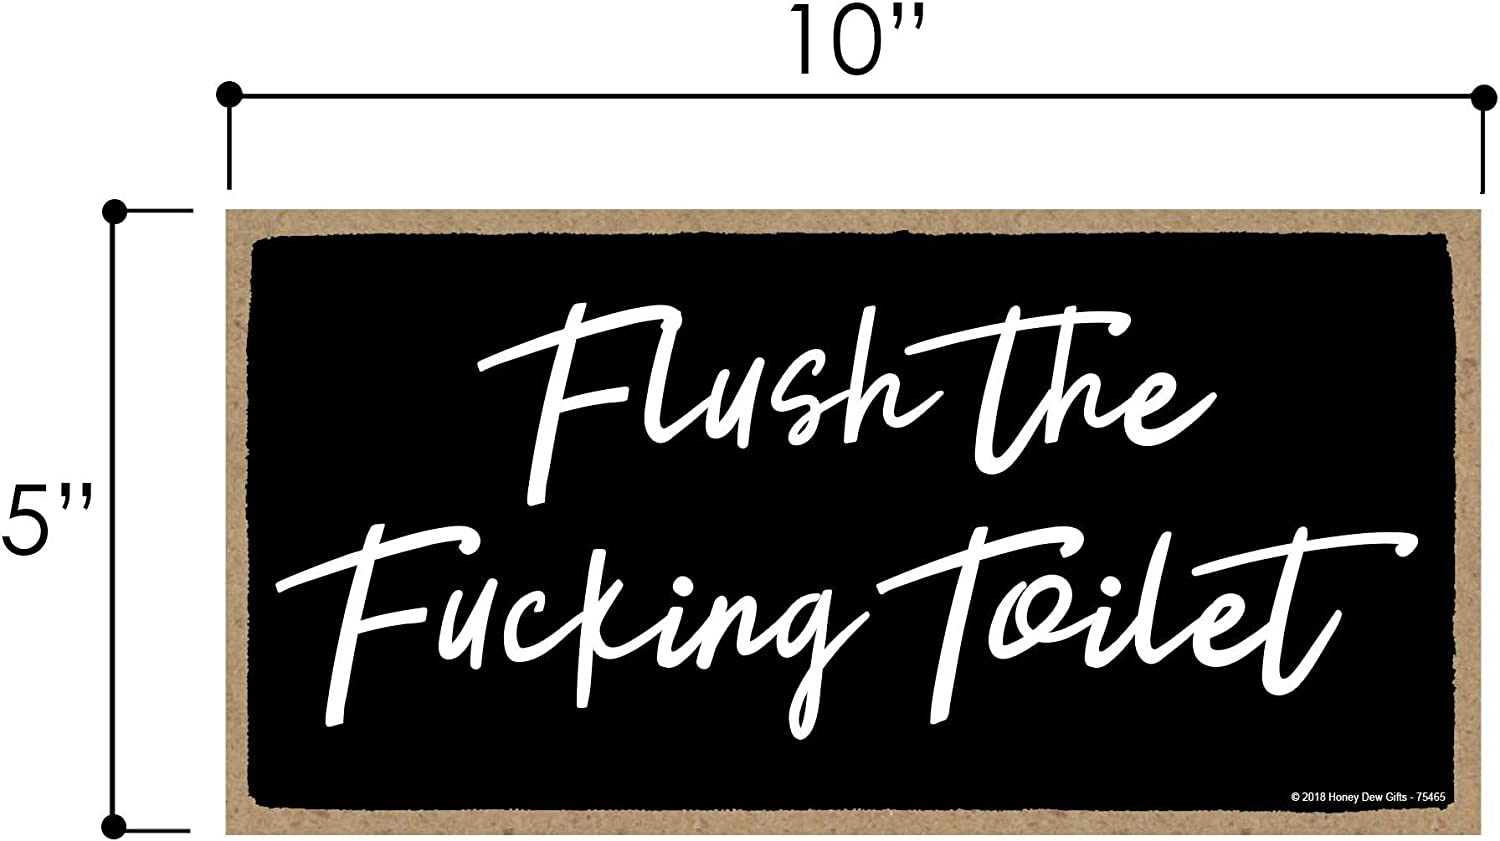 Wall Art Decorative Wood Sign Home Bathroom Decor Honey Dew Gifts Inappropriate Funny Flush The Fucking Toilet 5 inch by 10 inch Hanging